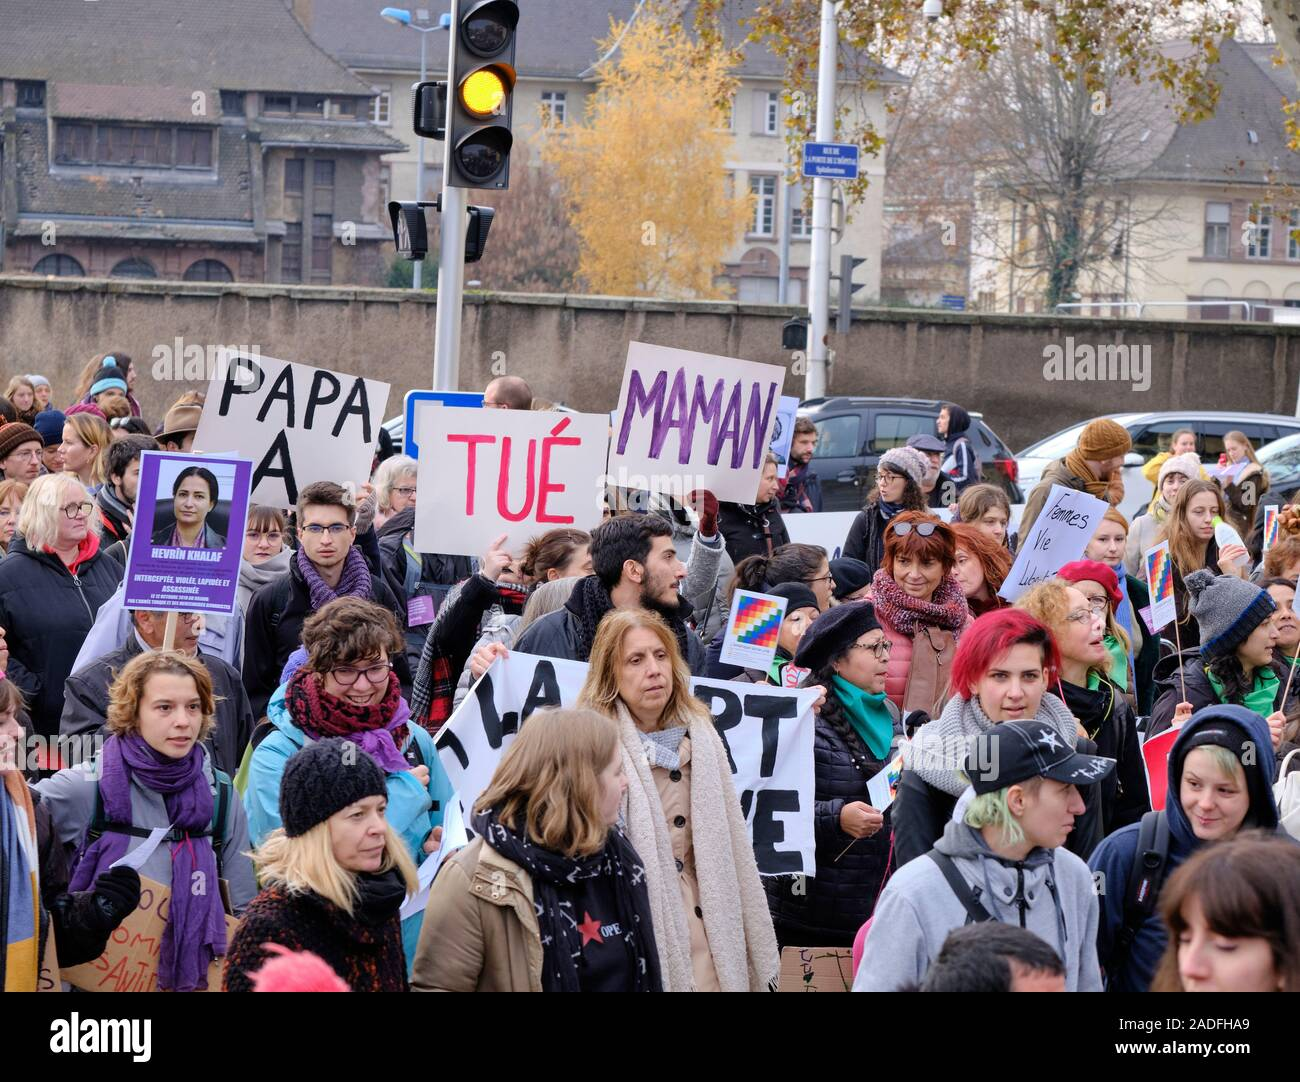 strasbourg-france-protest-against-sexist-and-sexual-violence-against-all-women-view-of-crowd-with-focus-on-placards-reading-dad-killed-mom-2ADFHA9.jpg